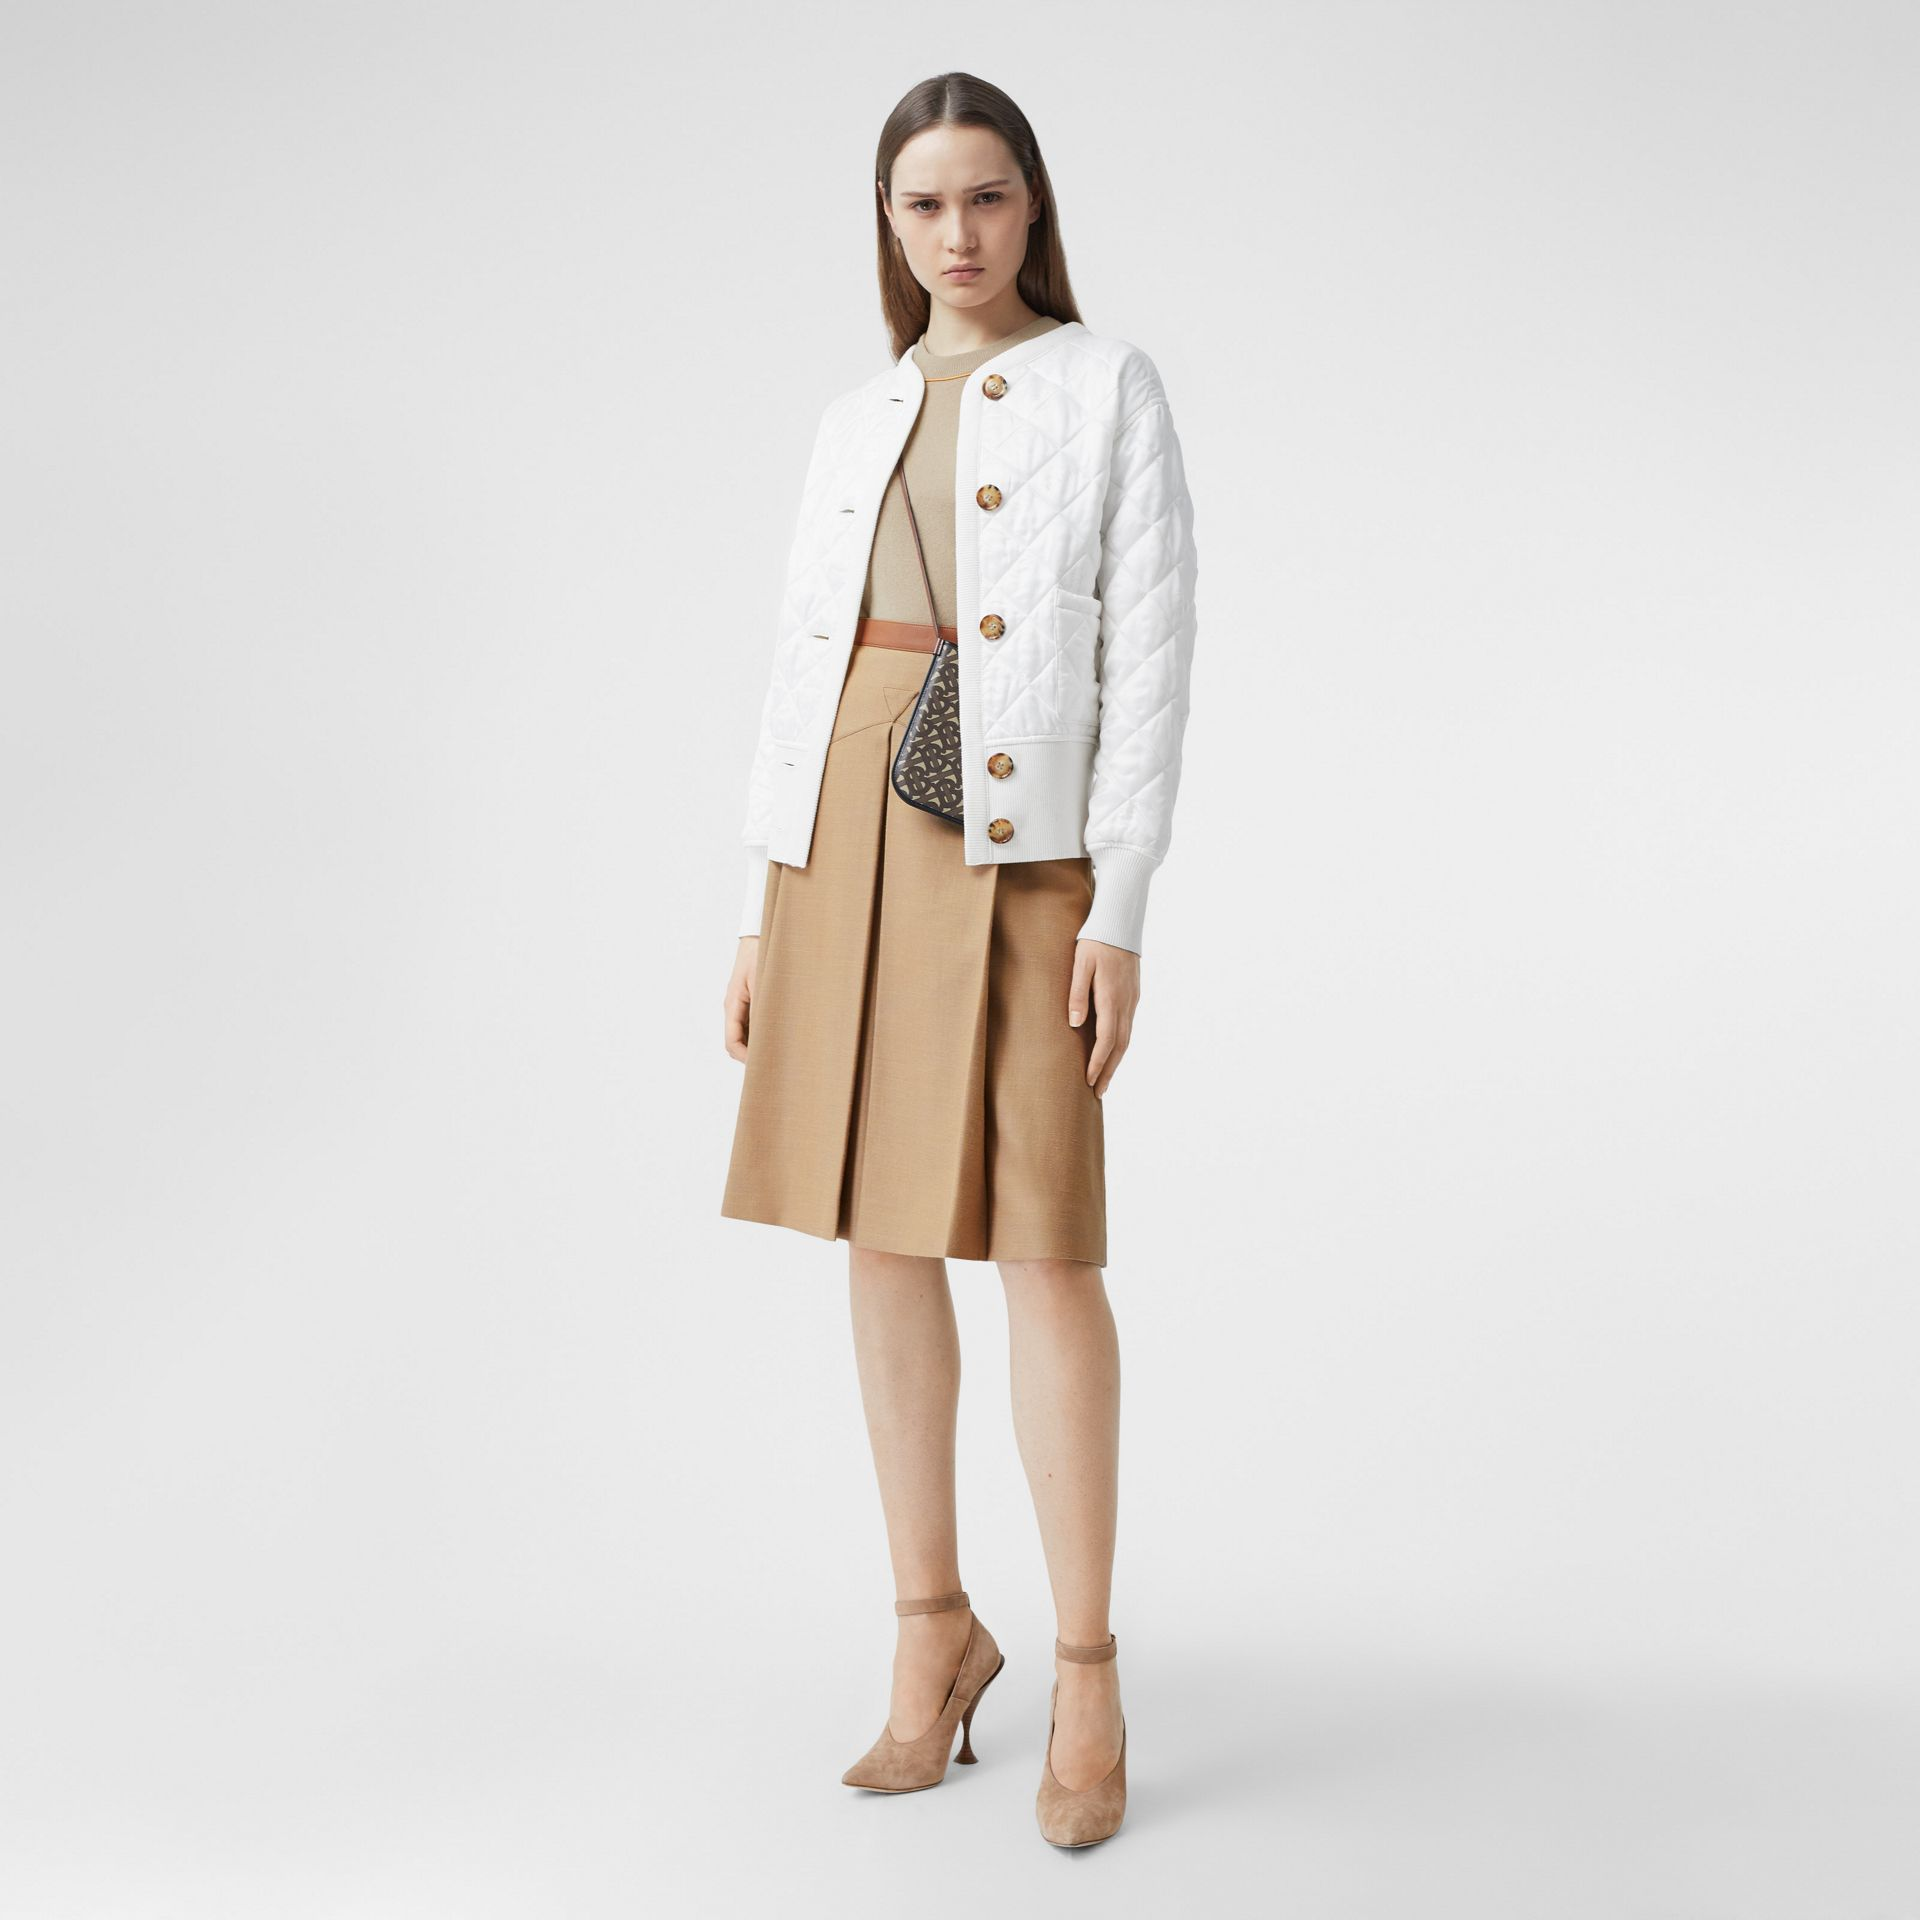 Logo Jacquard Diamond Quilted and Wool Blend Jacket in White - Women | Burberry Australia - gallery image 5